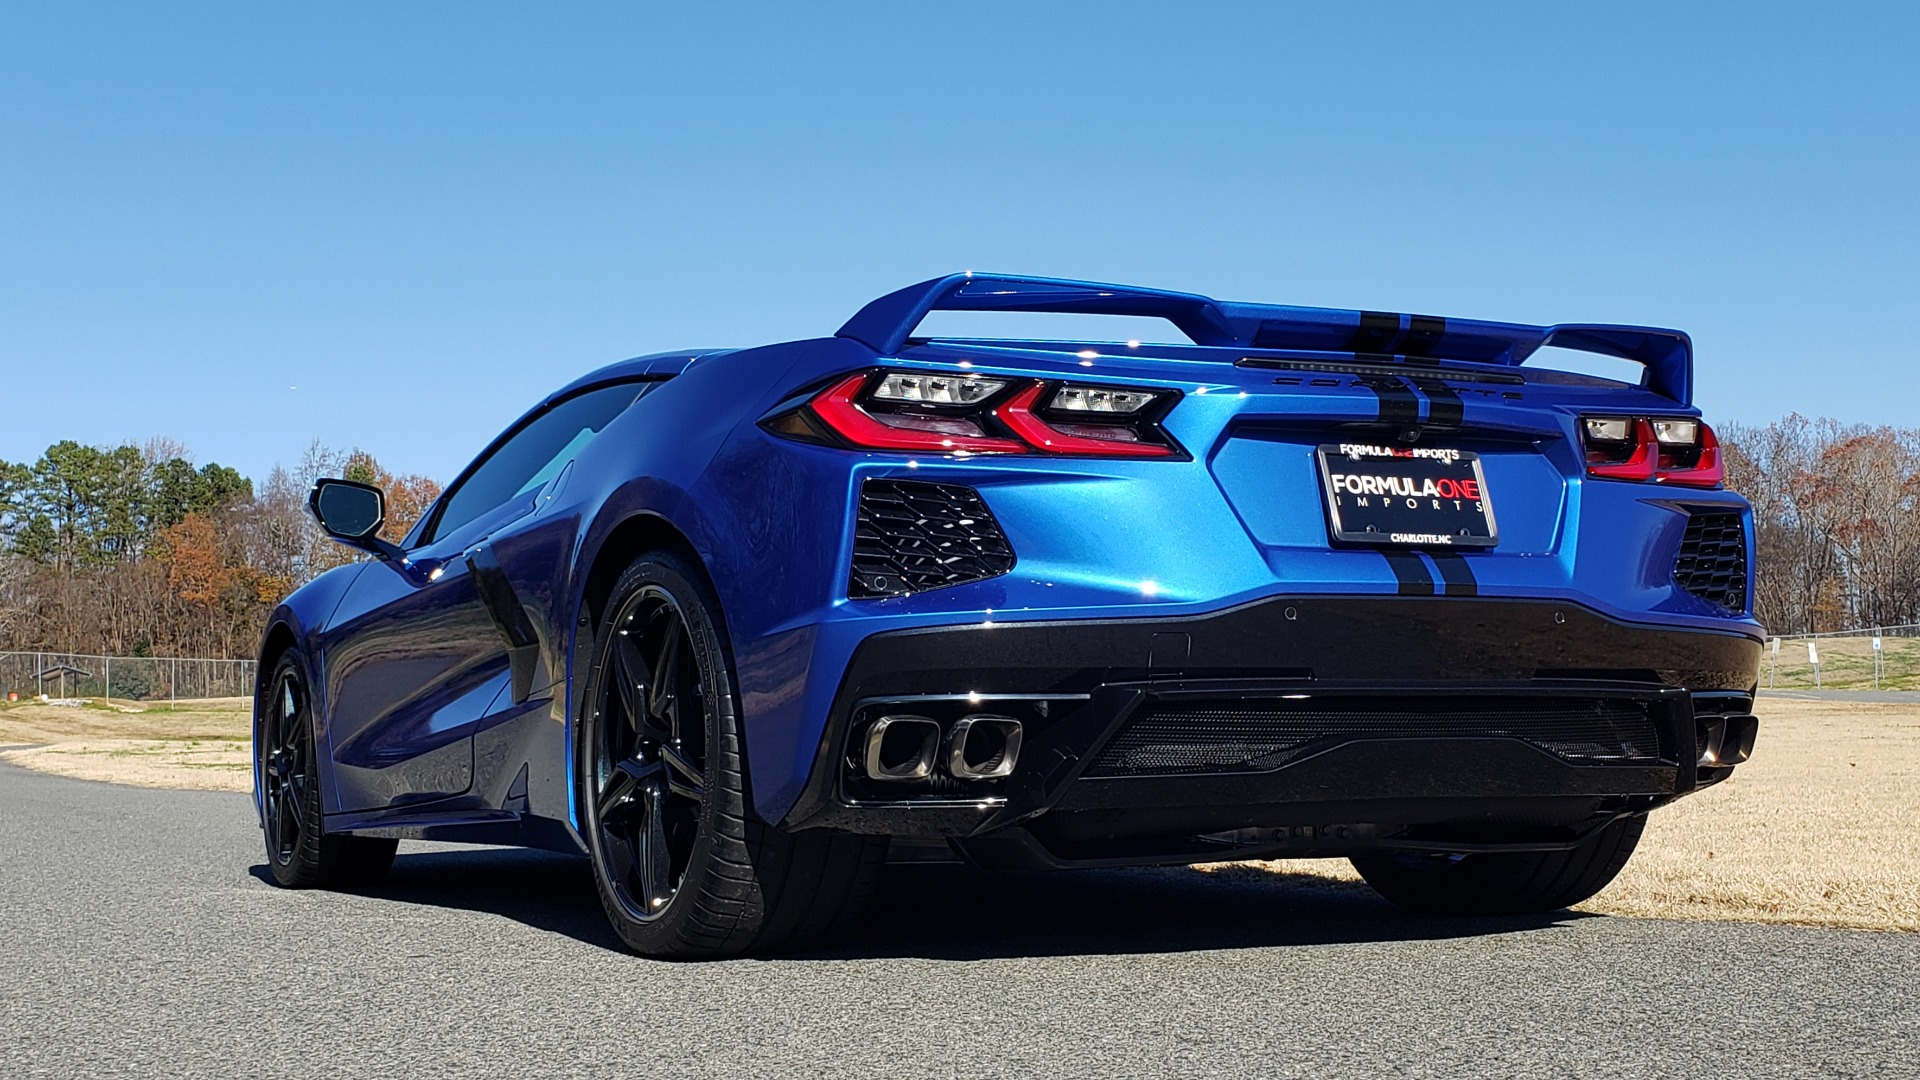 Used 2020 Chevrolet C8 CORVETTE STINGRAY 2LT COUPE / NAV / HUD / BOSE / GT2 SEATS / FRONT LIFT / REARVIEW for sale Sold at Formula Imports in Charlotte NC 28227 8